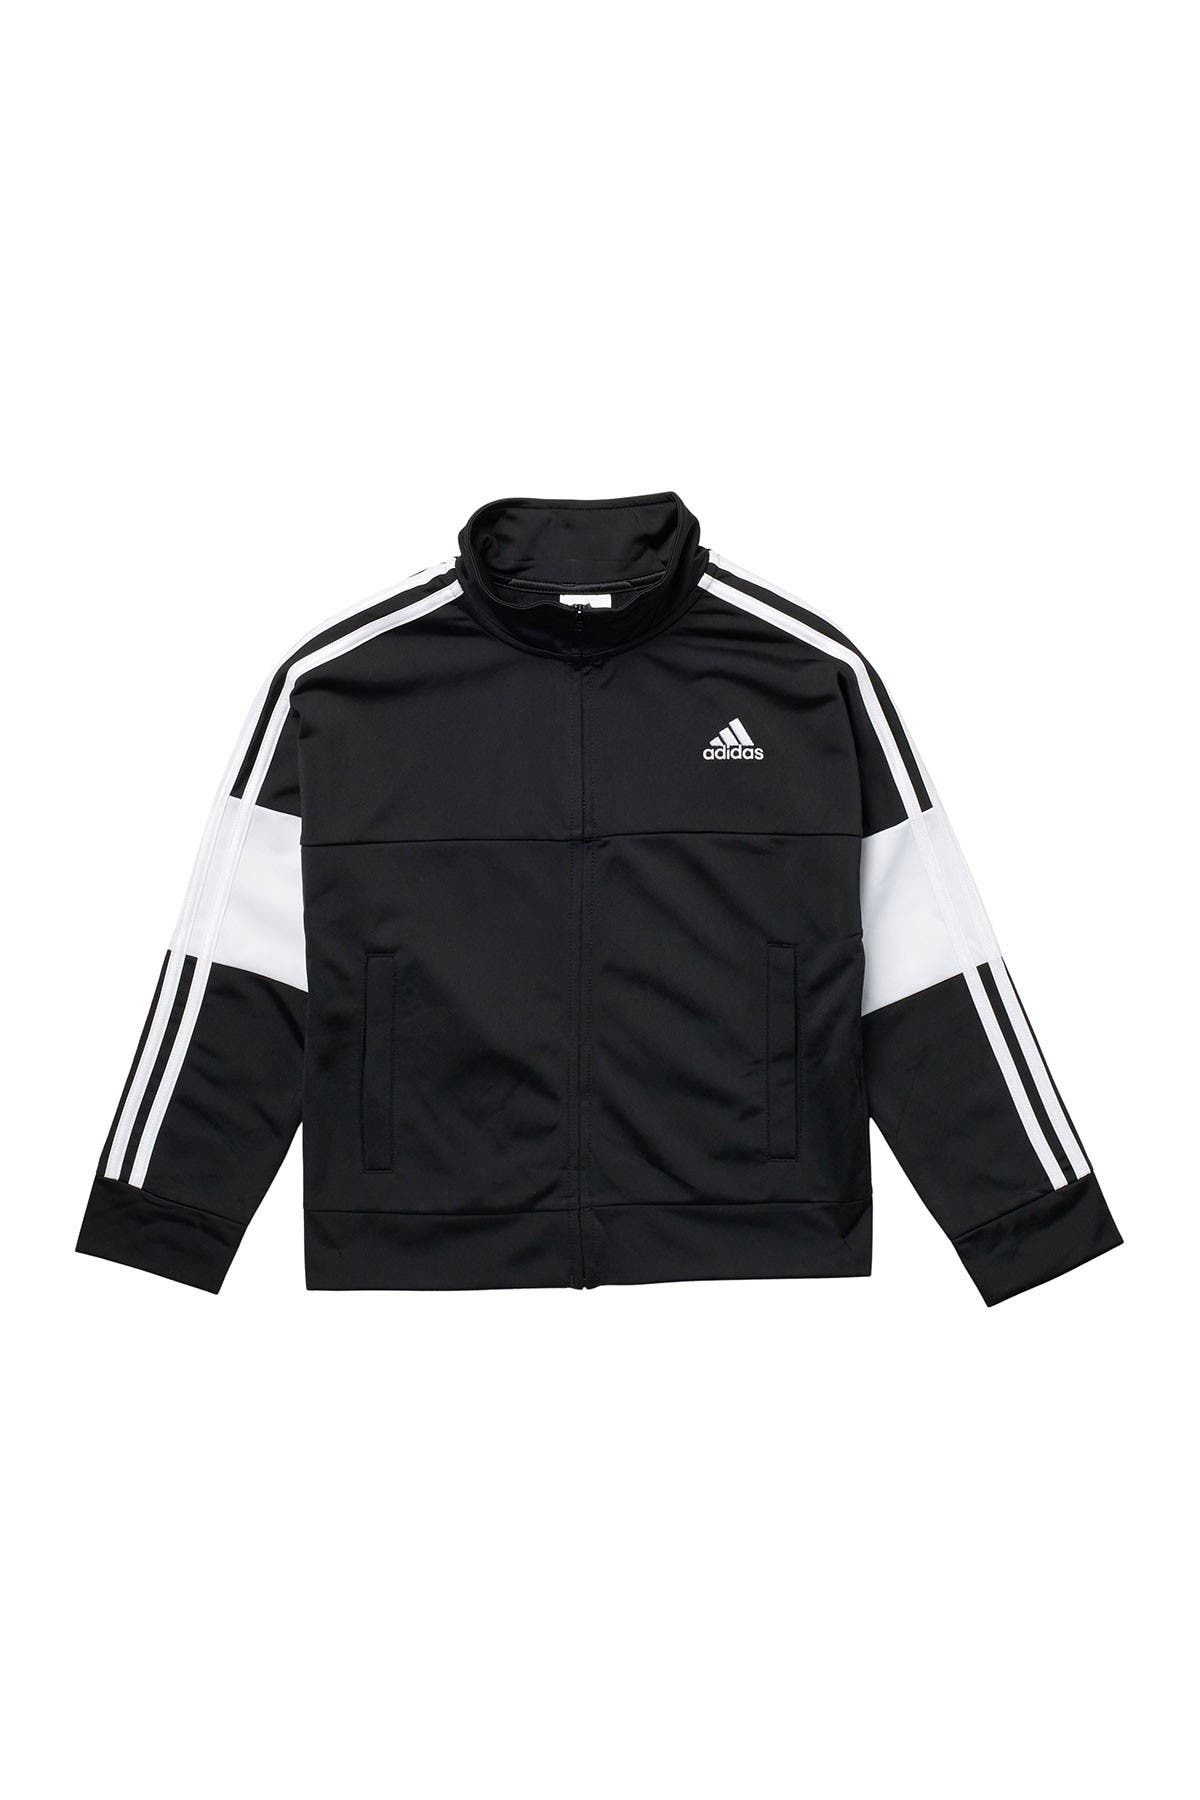 Image of adidas Zip Front Badge Tricot Jacket